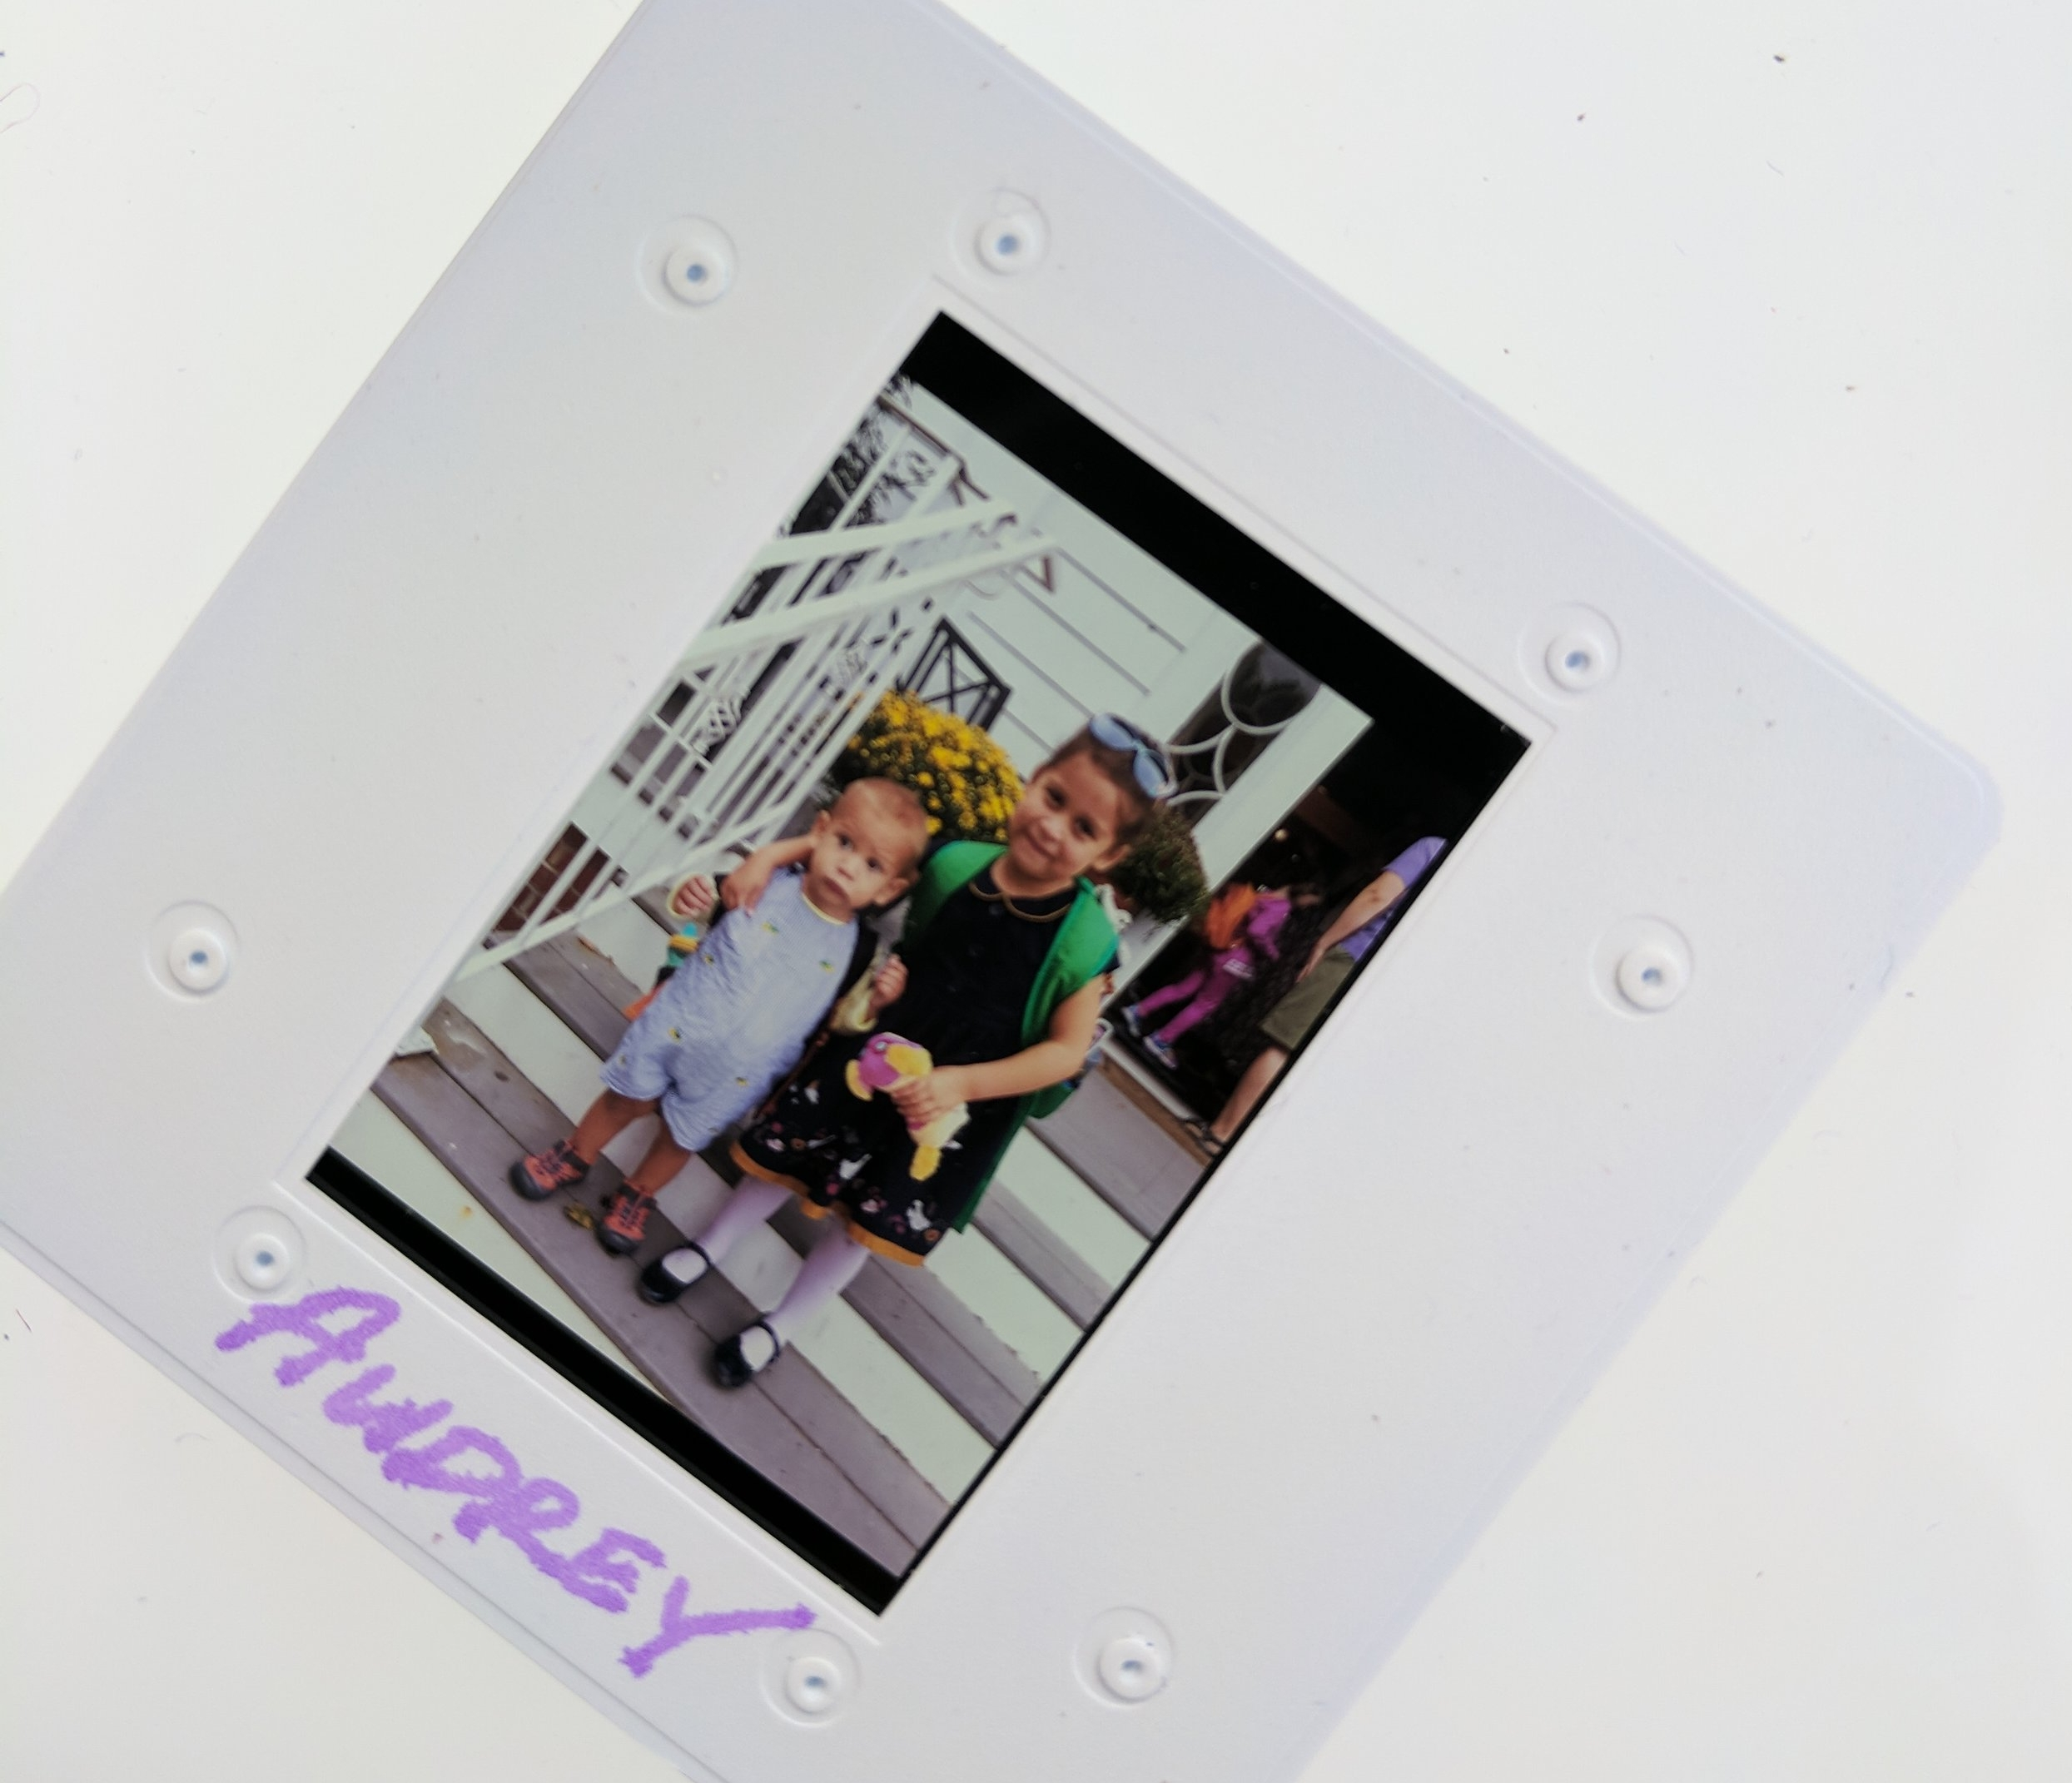 A slide with an image from Audrey's collection.